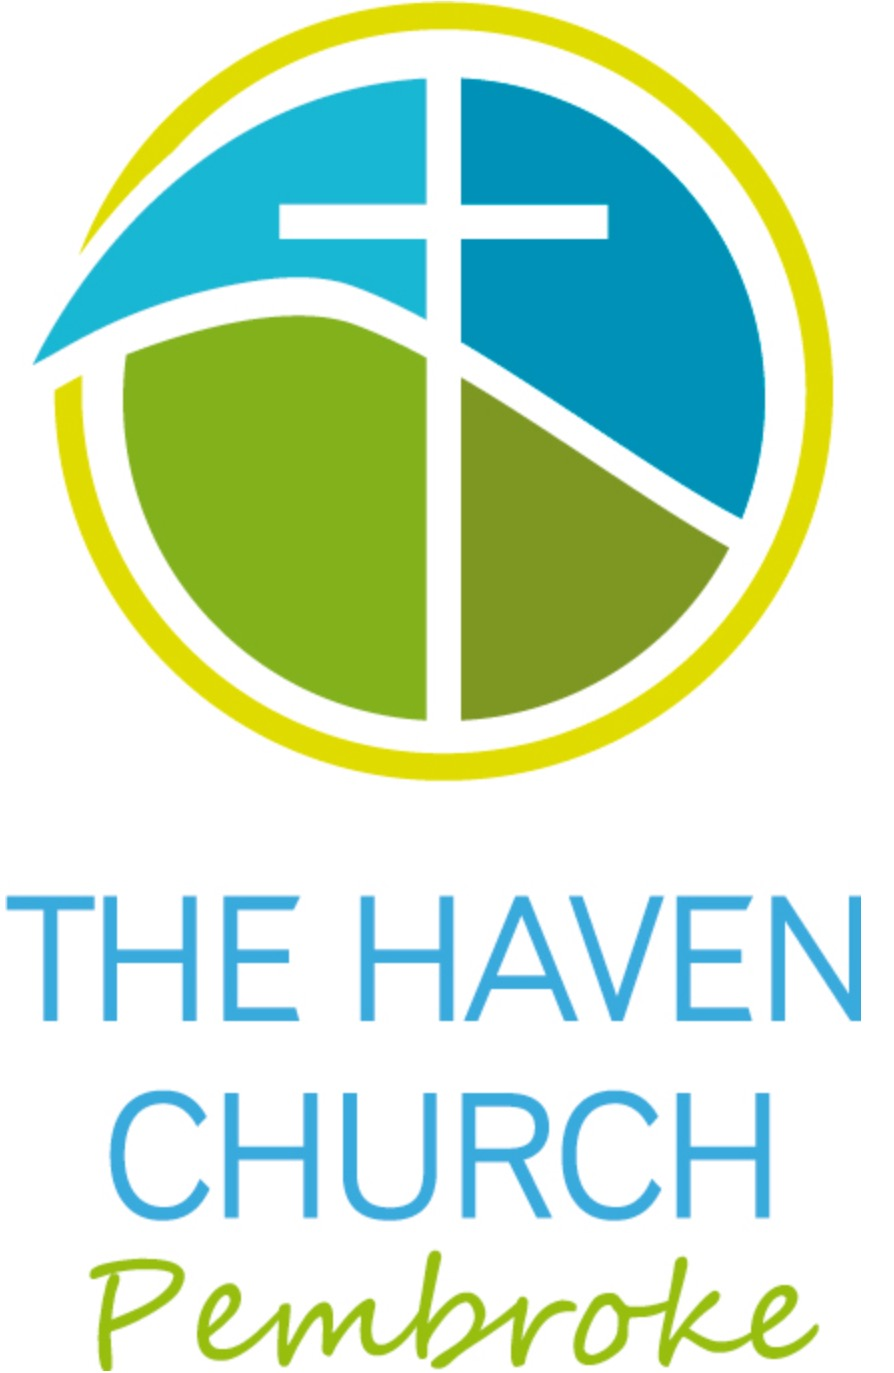 The Haven Church, Pembroke